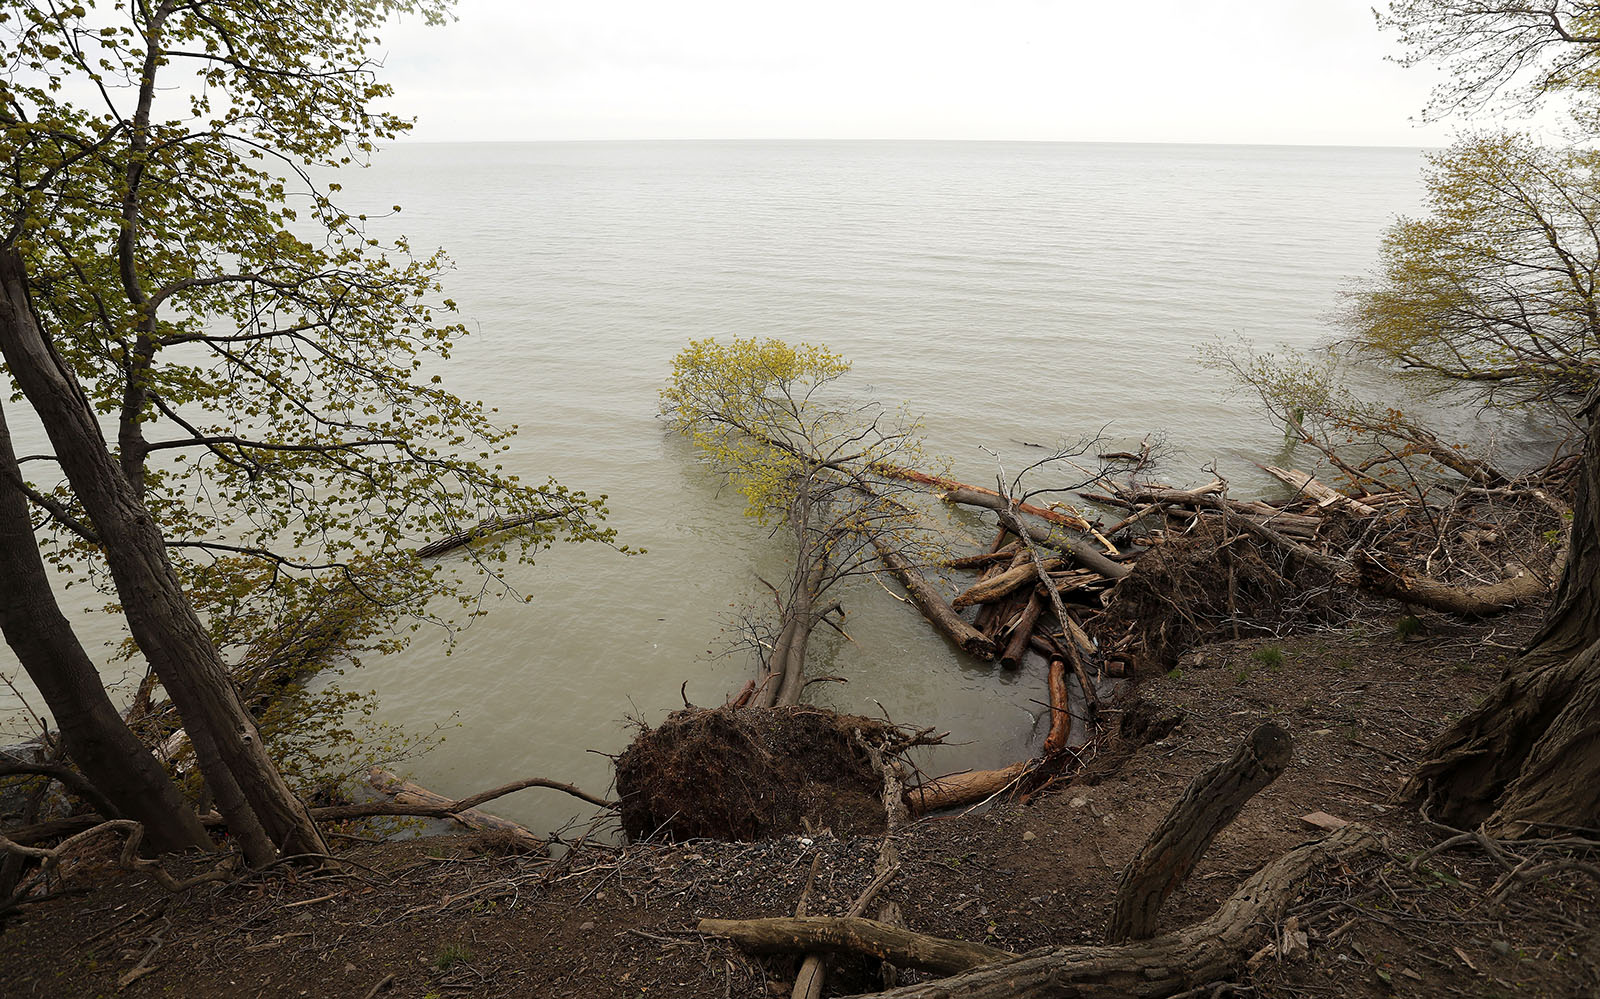 Disaster declaration issued for Lake Ontario flooding